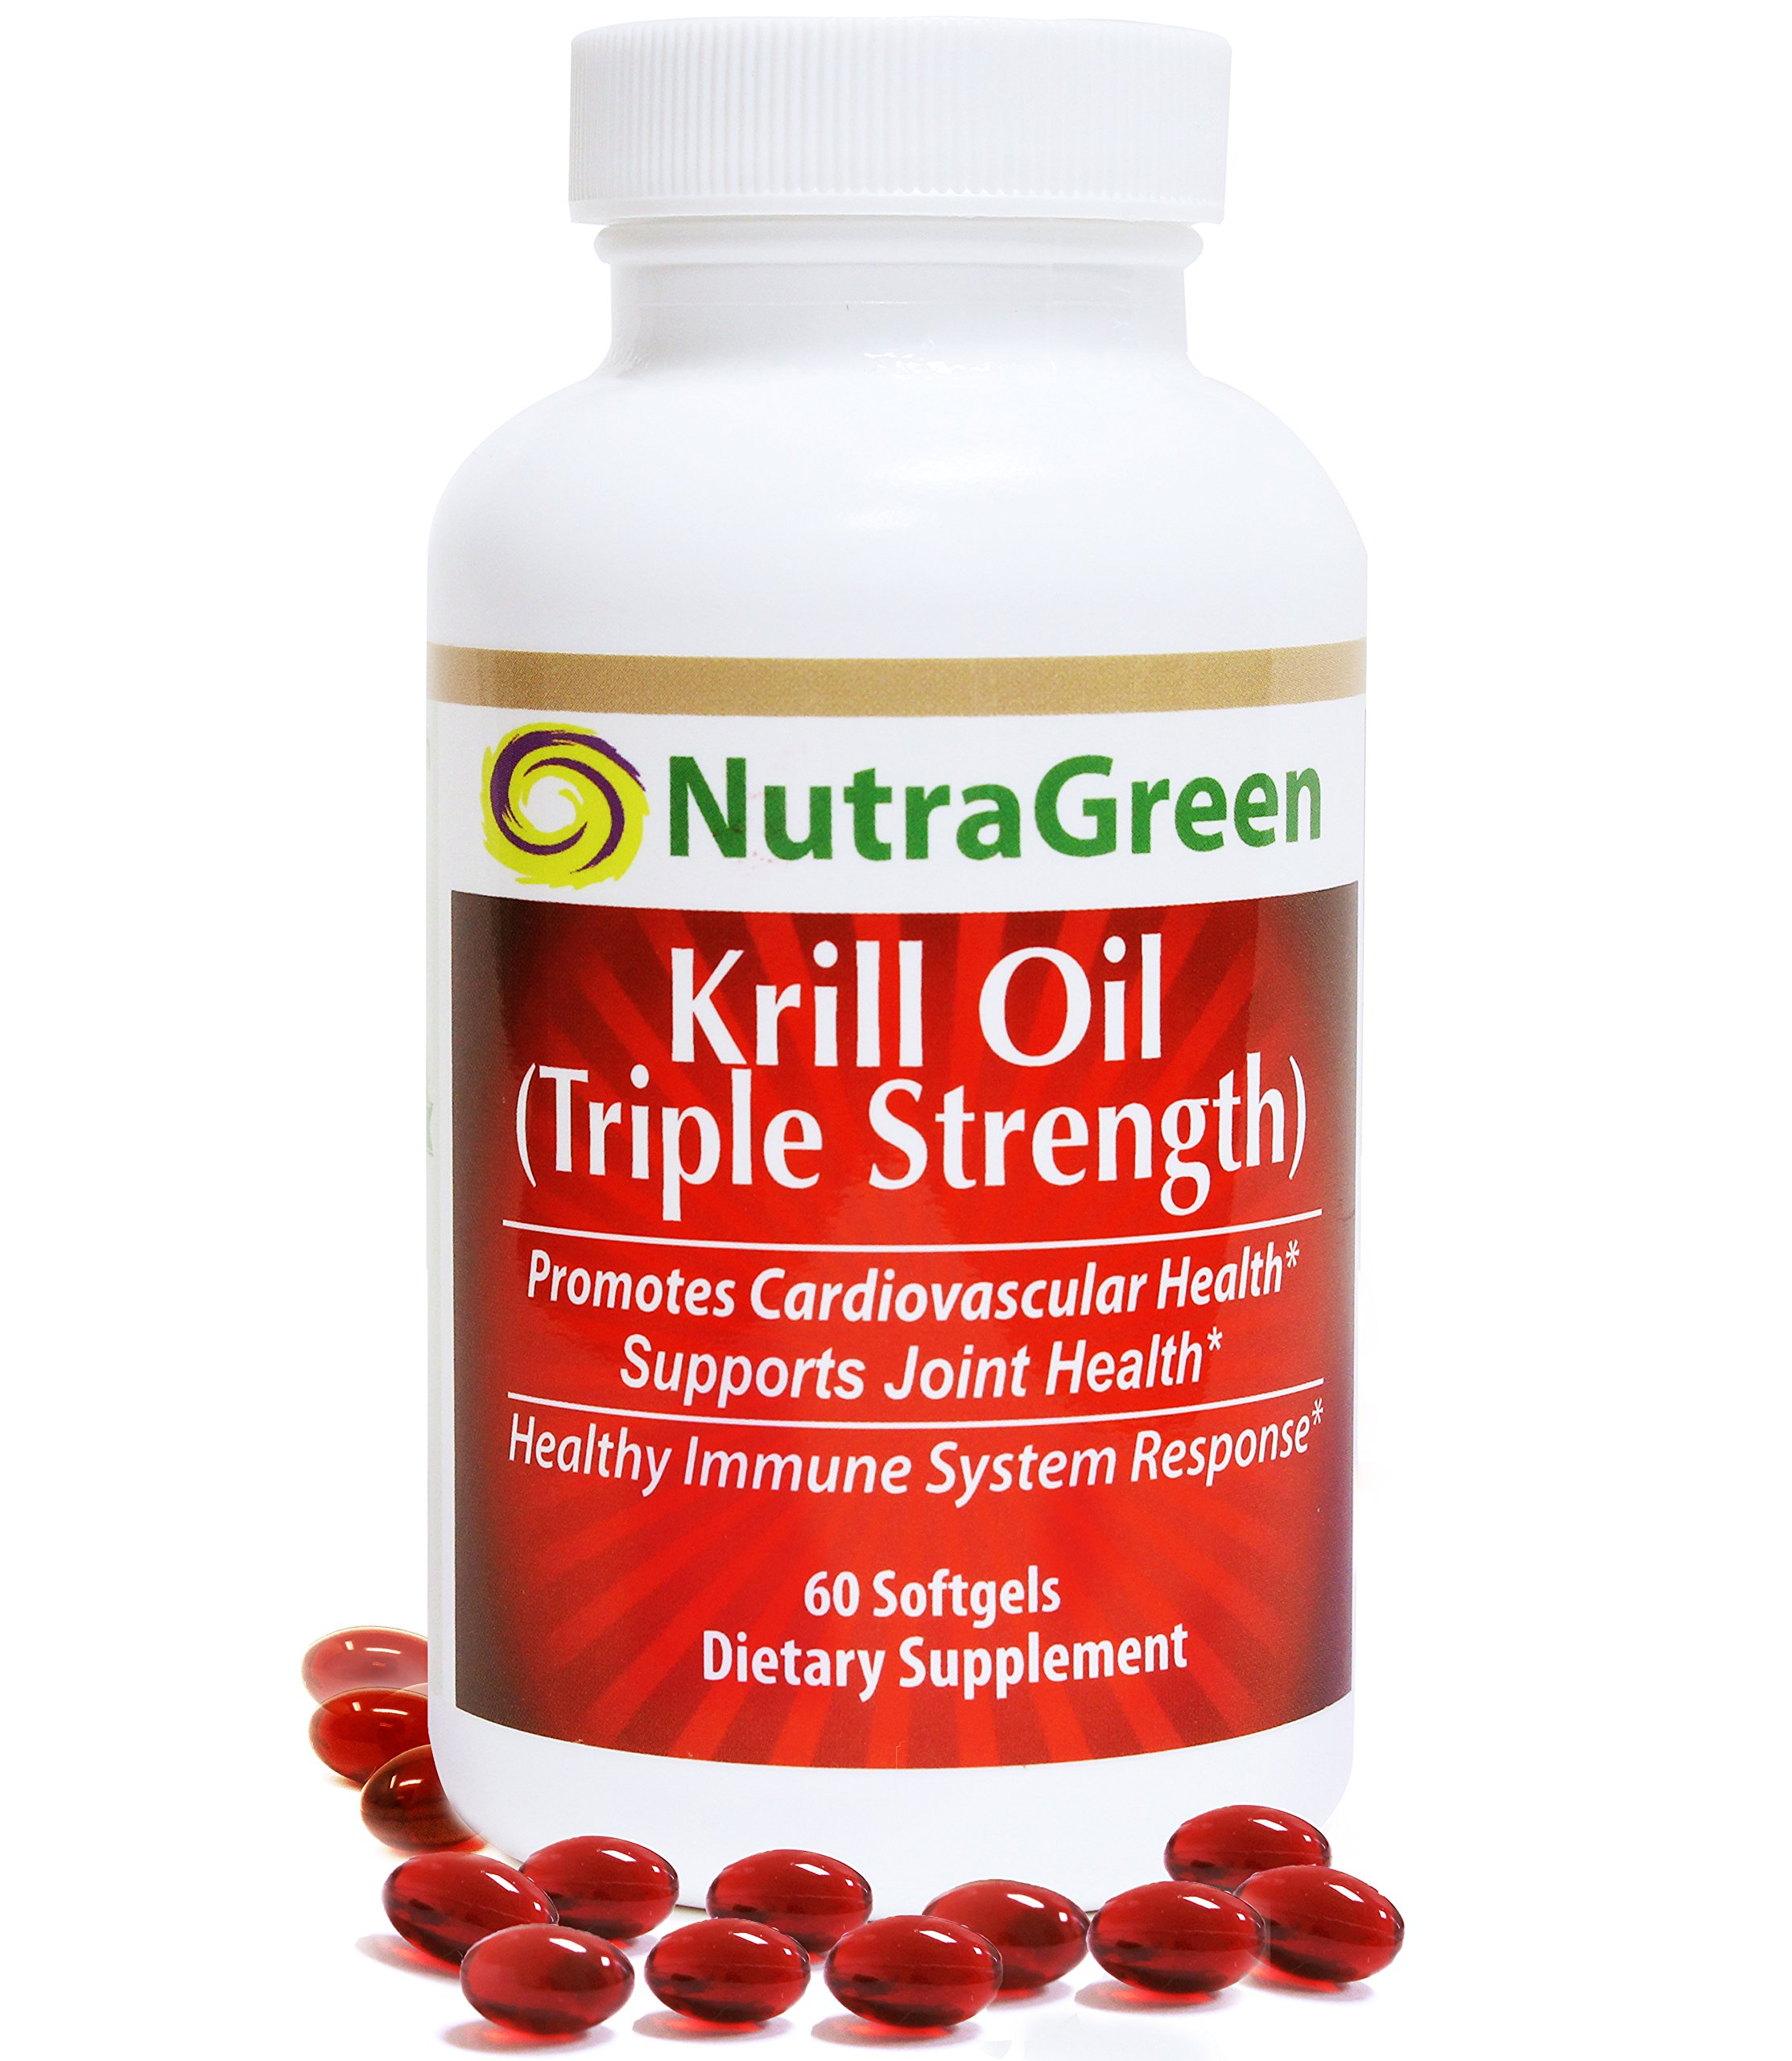 NutraGreen Antarctic Krill Oil 1000mg with Astaxanthin/Omega-3/Phospholipids Suports Heart, Joint and Immune Health, 60 Softgels | No Aftertaste Or Burps